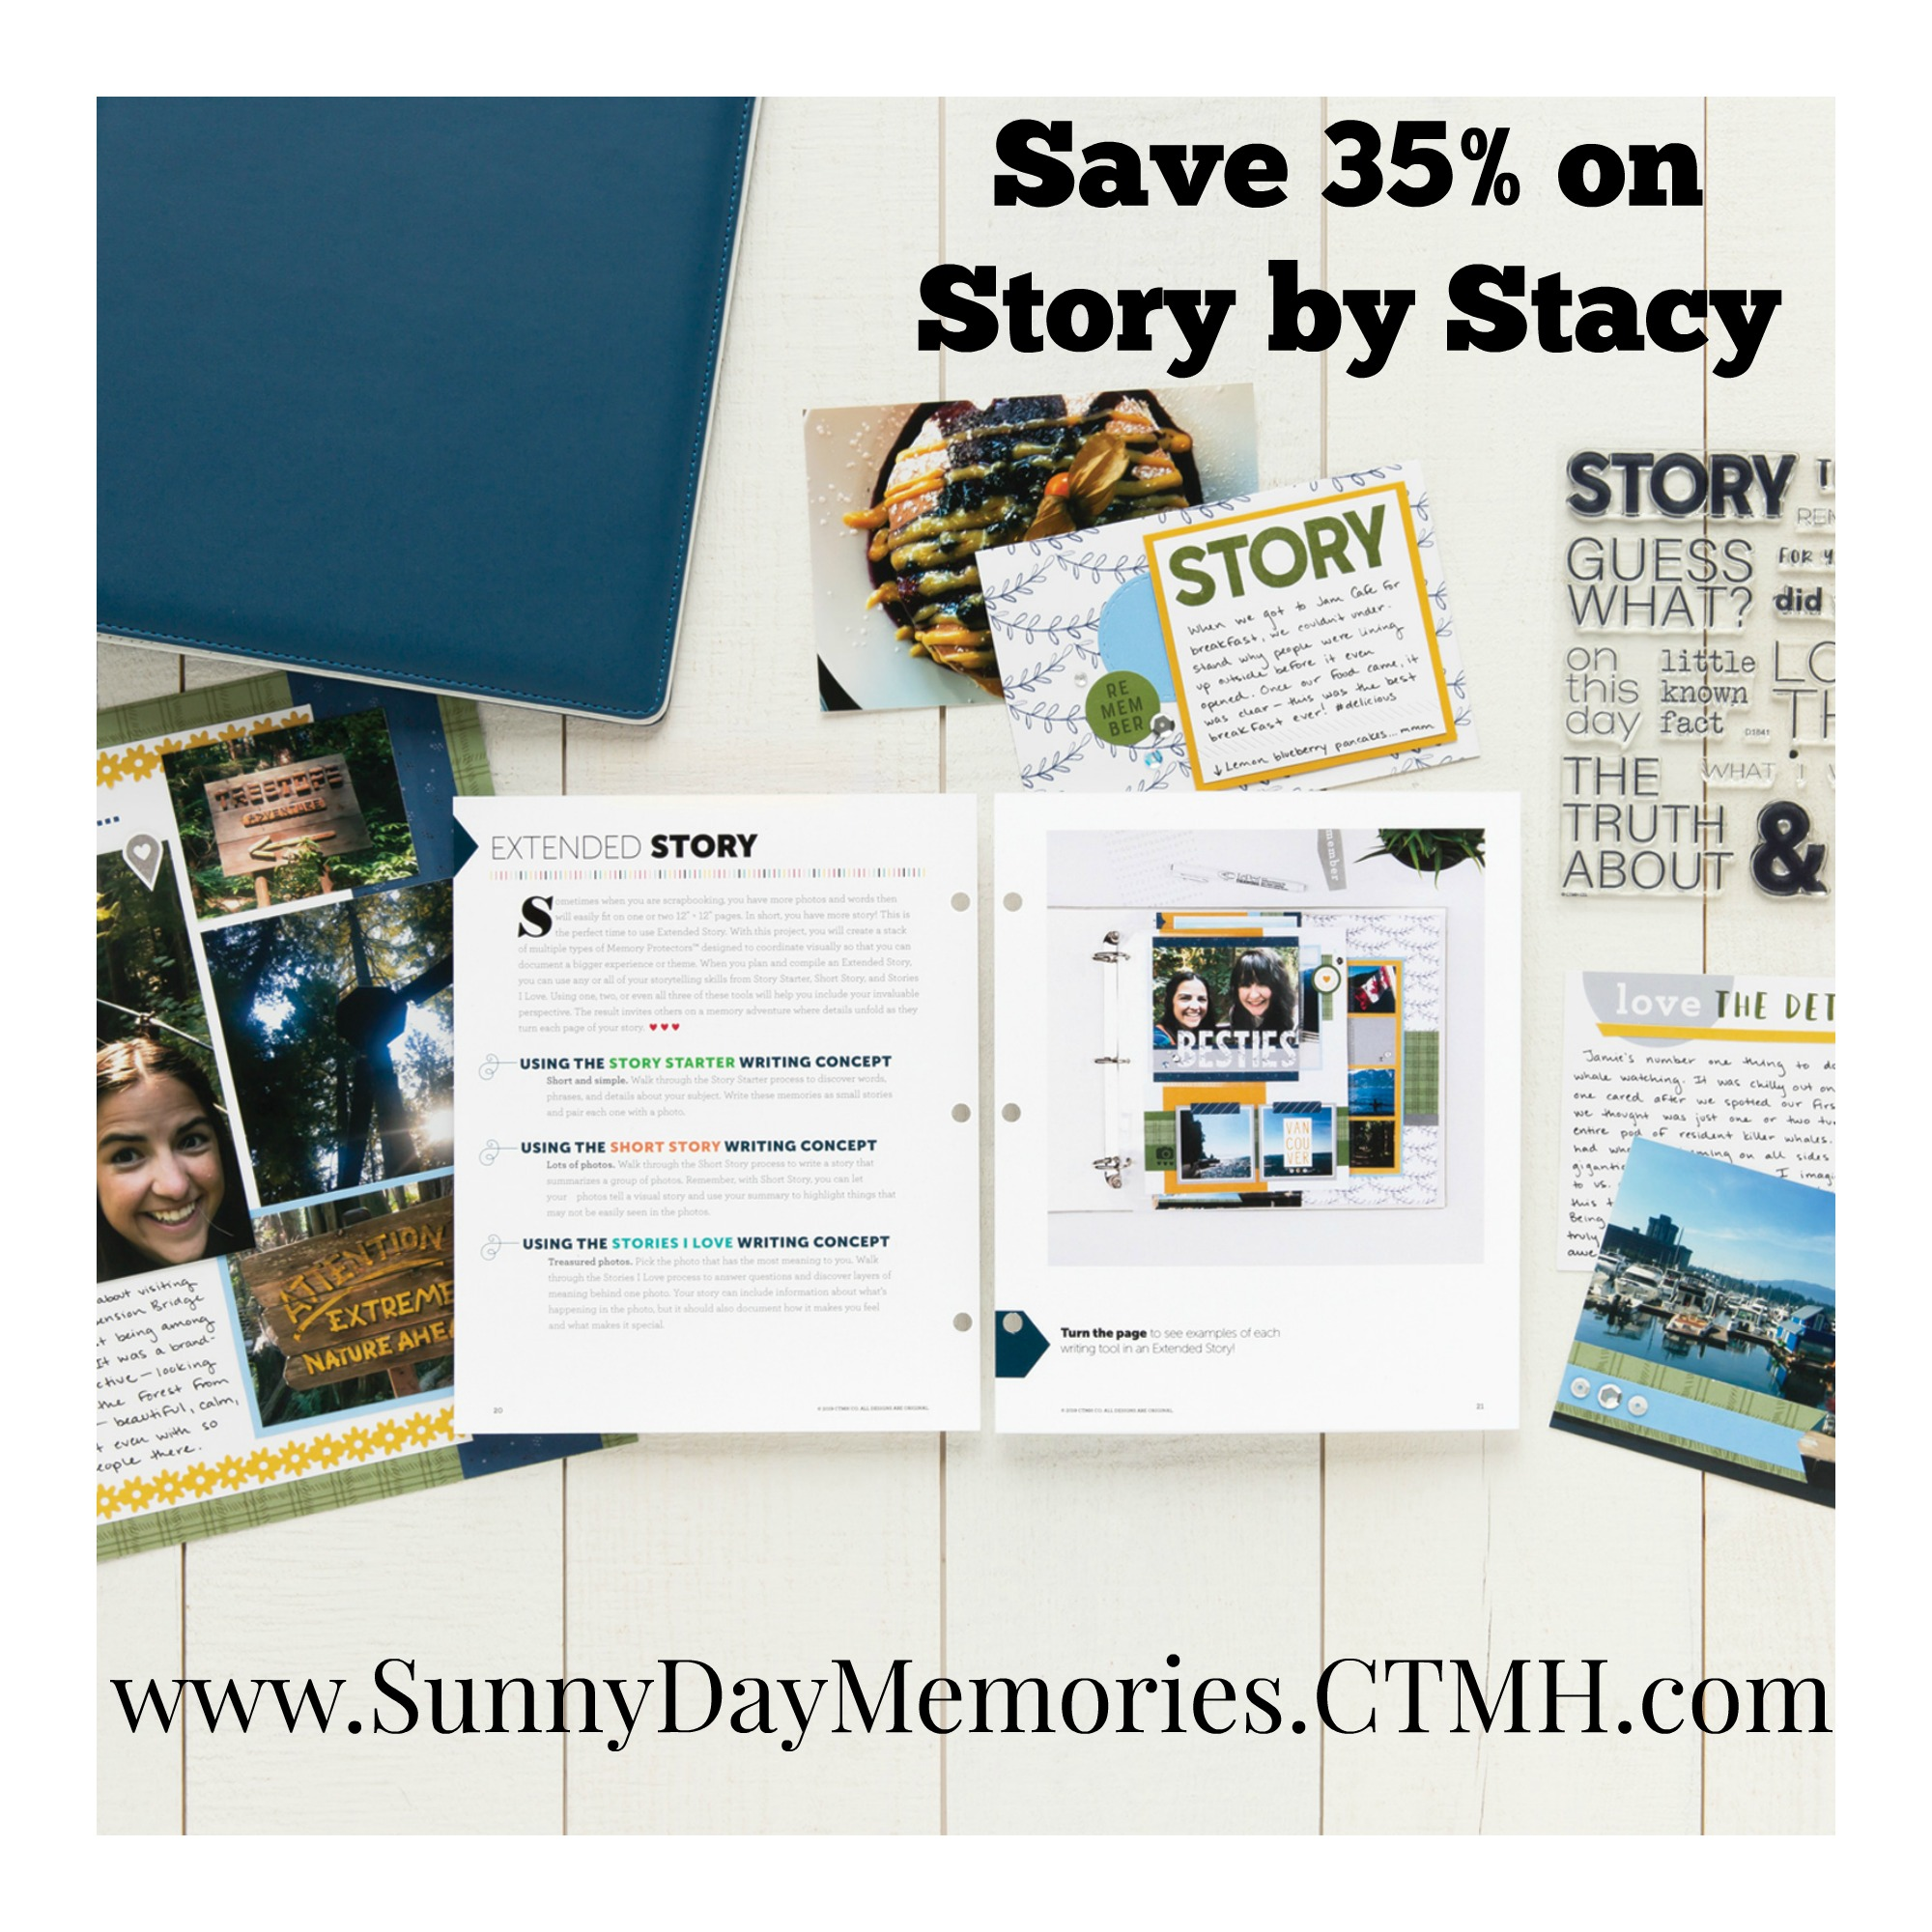 CTMH Story by Stacy Anniversary Special